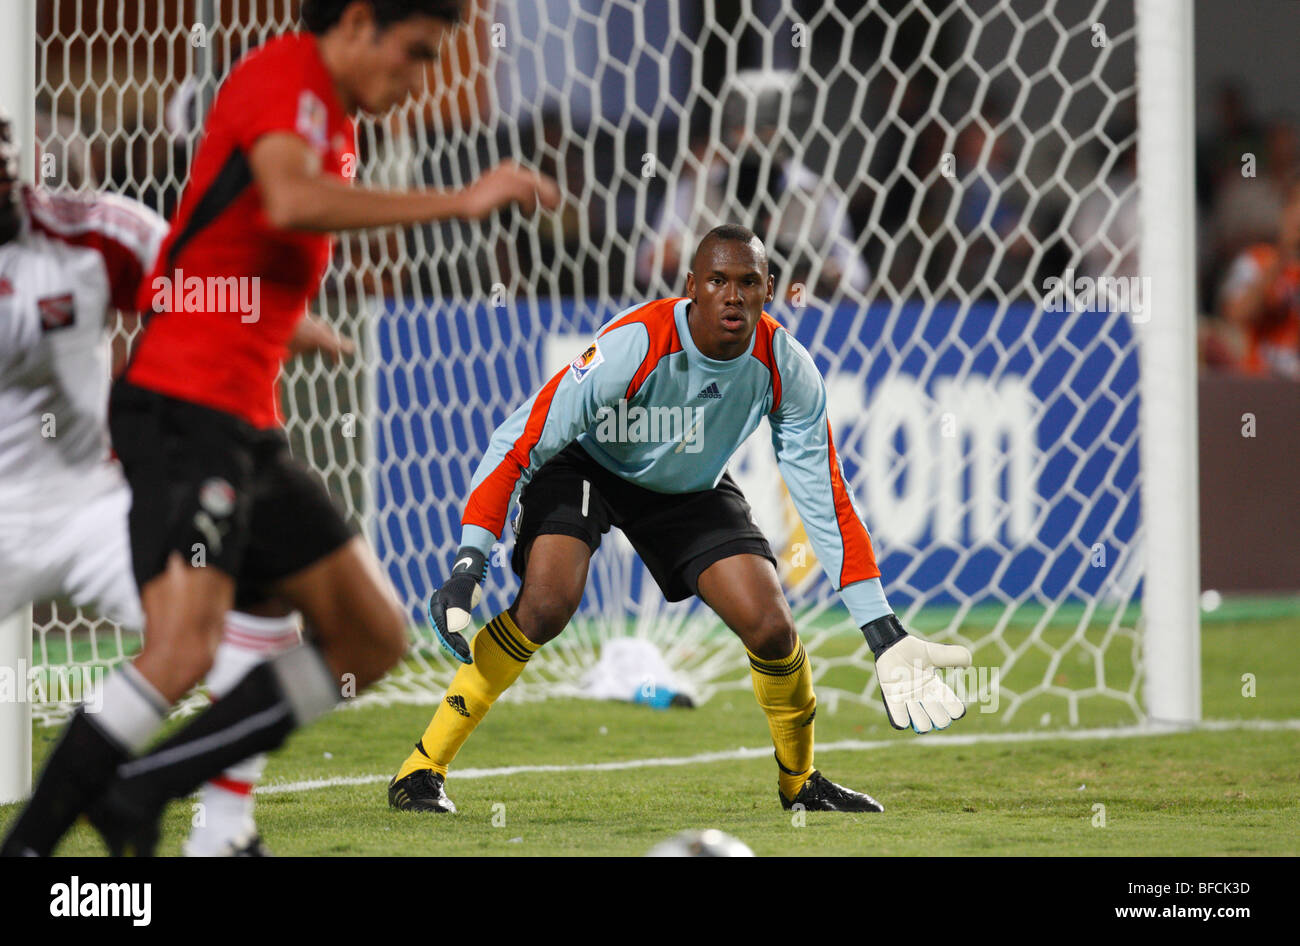 Goalkeeper Glenroy Samuel of Trinidad and Tobago in action during a 2009 FIFA U-20 World Cup soccer match against - Stock Image